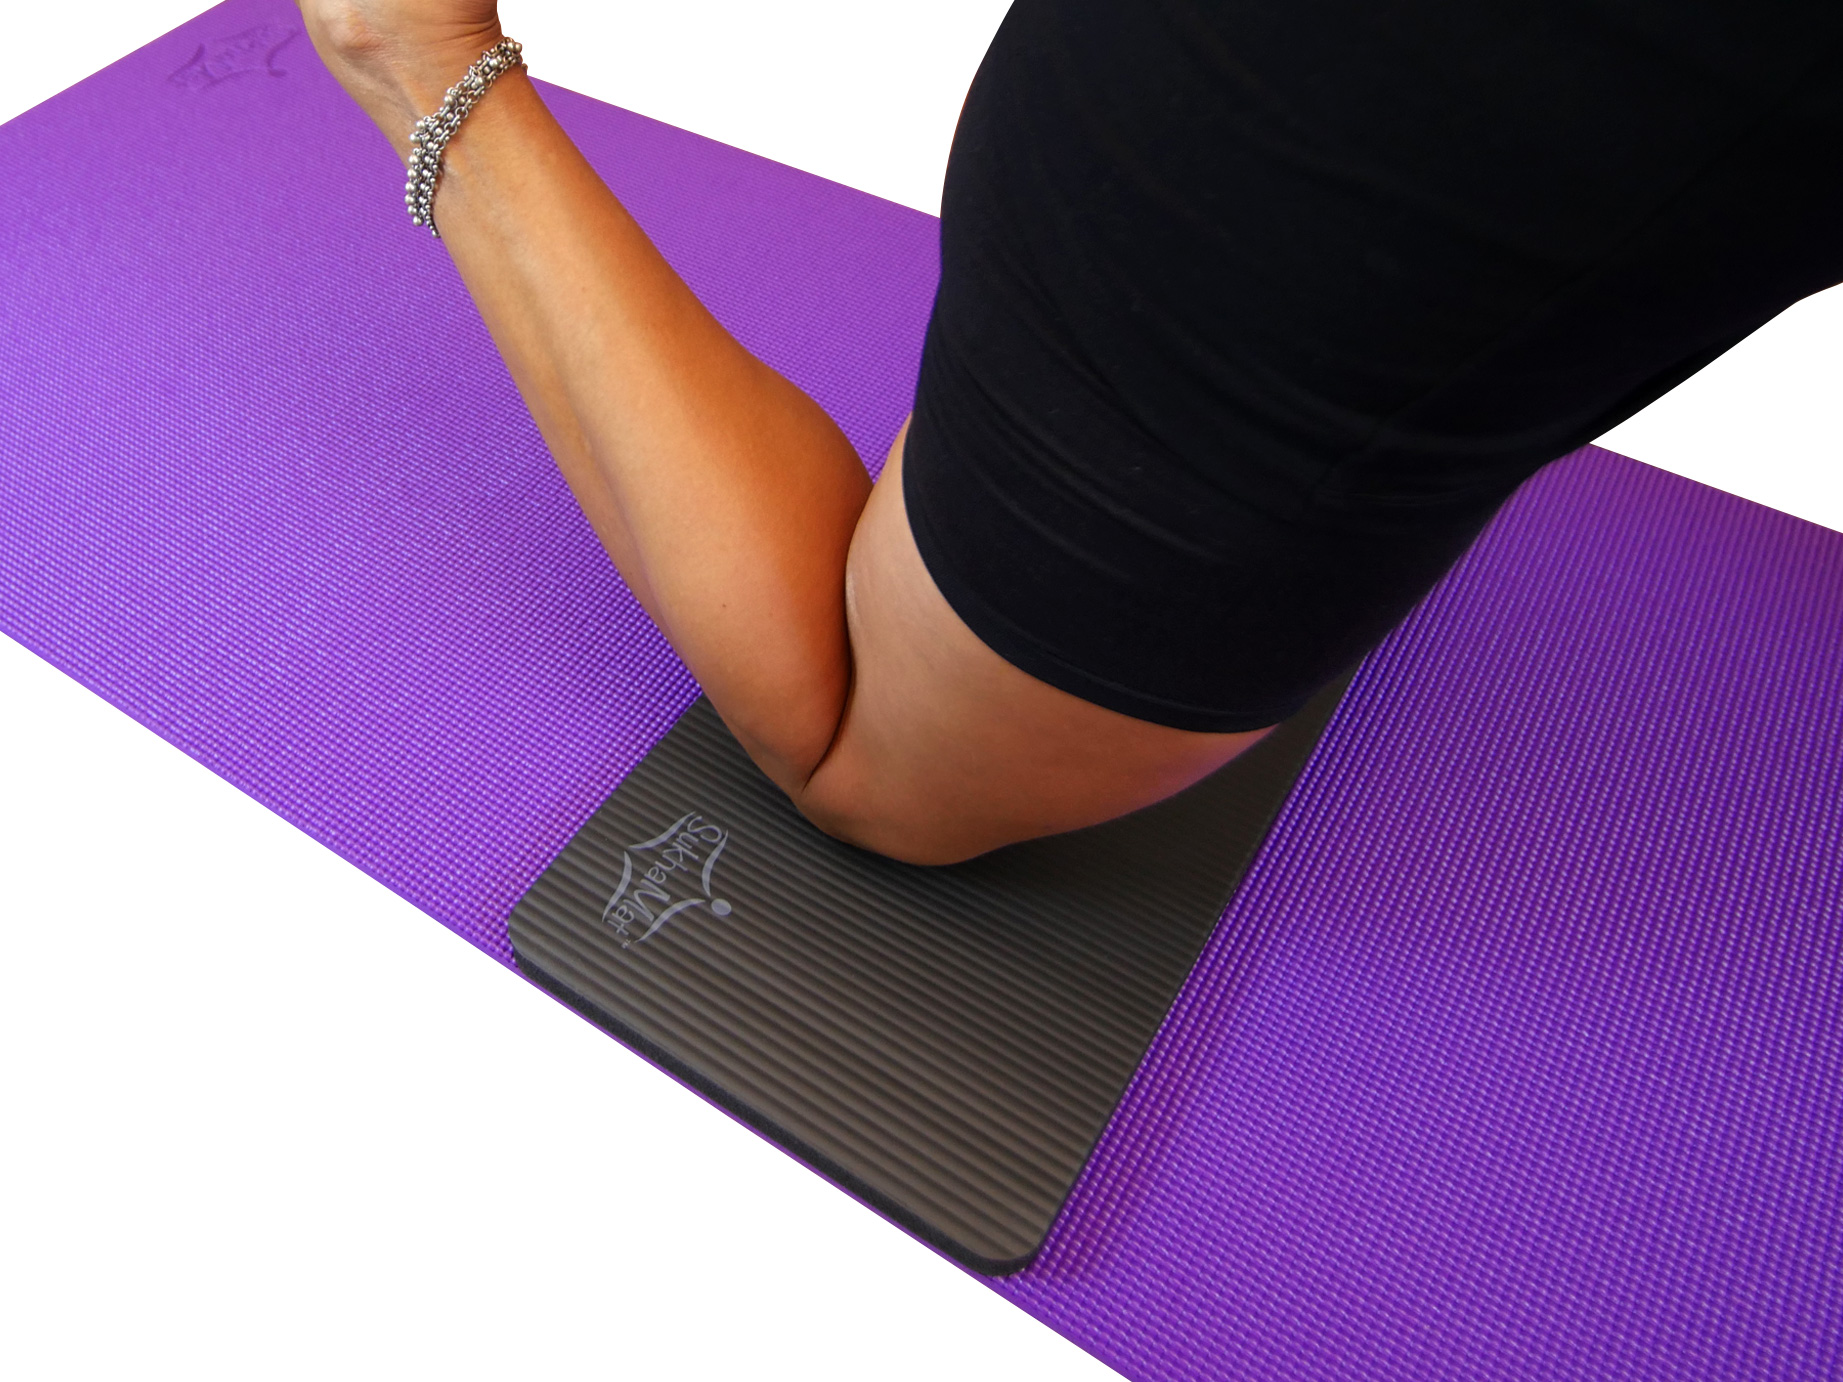 gaiam works yoga that a non health finally best mat the really mats slip fitness cheap hot